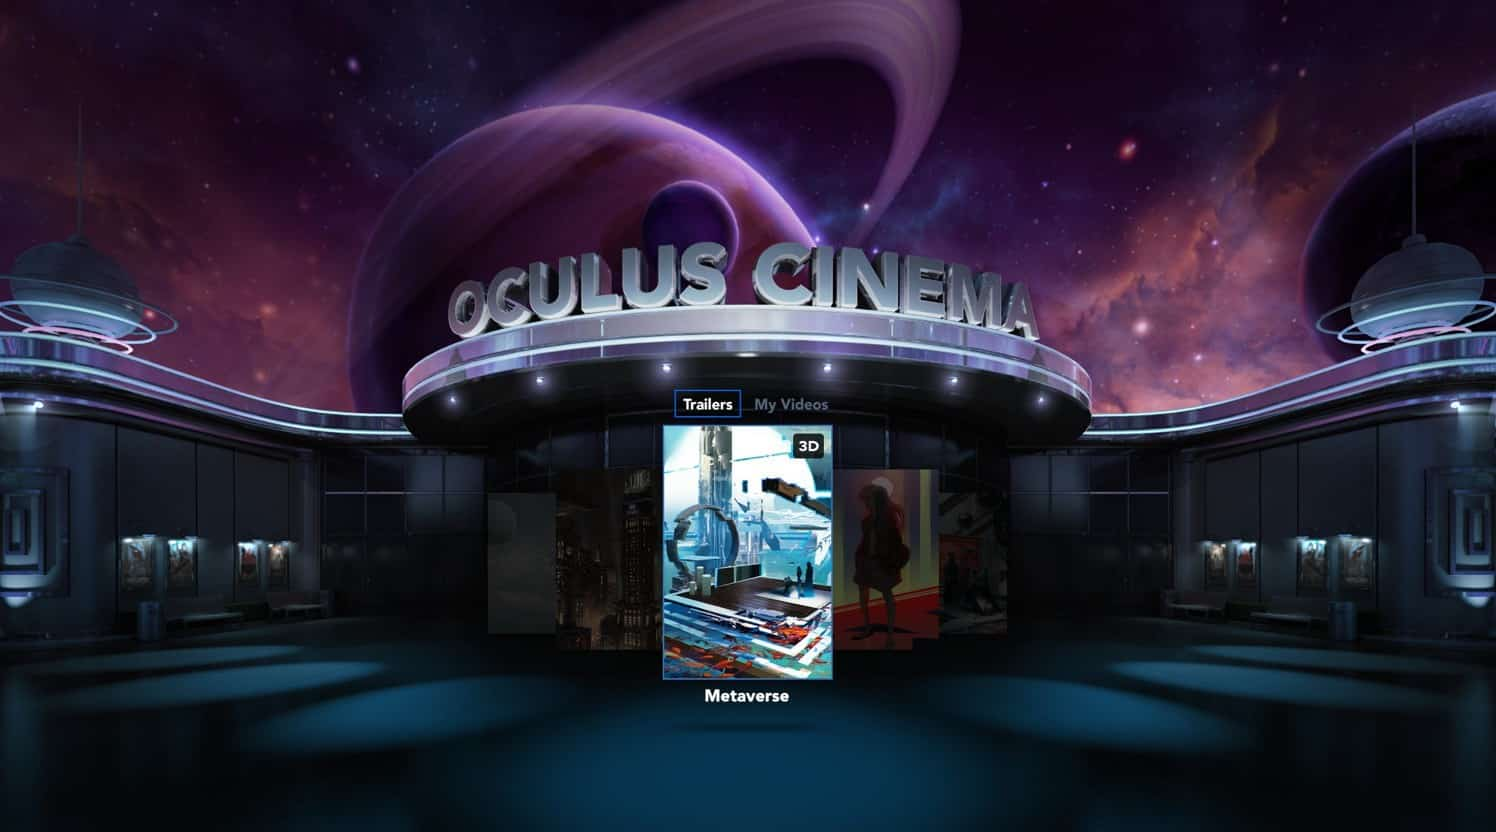 oculus-cinema-will-let-you-watch-movies-with-your-friends-488691-2